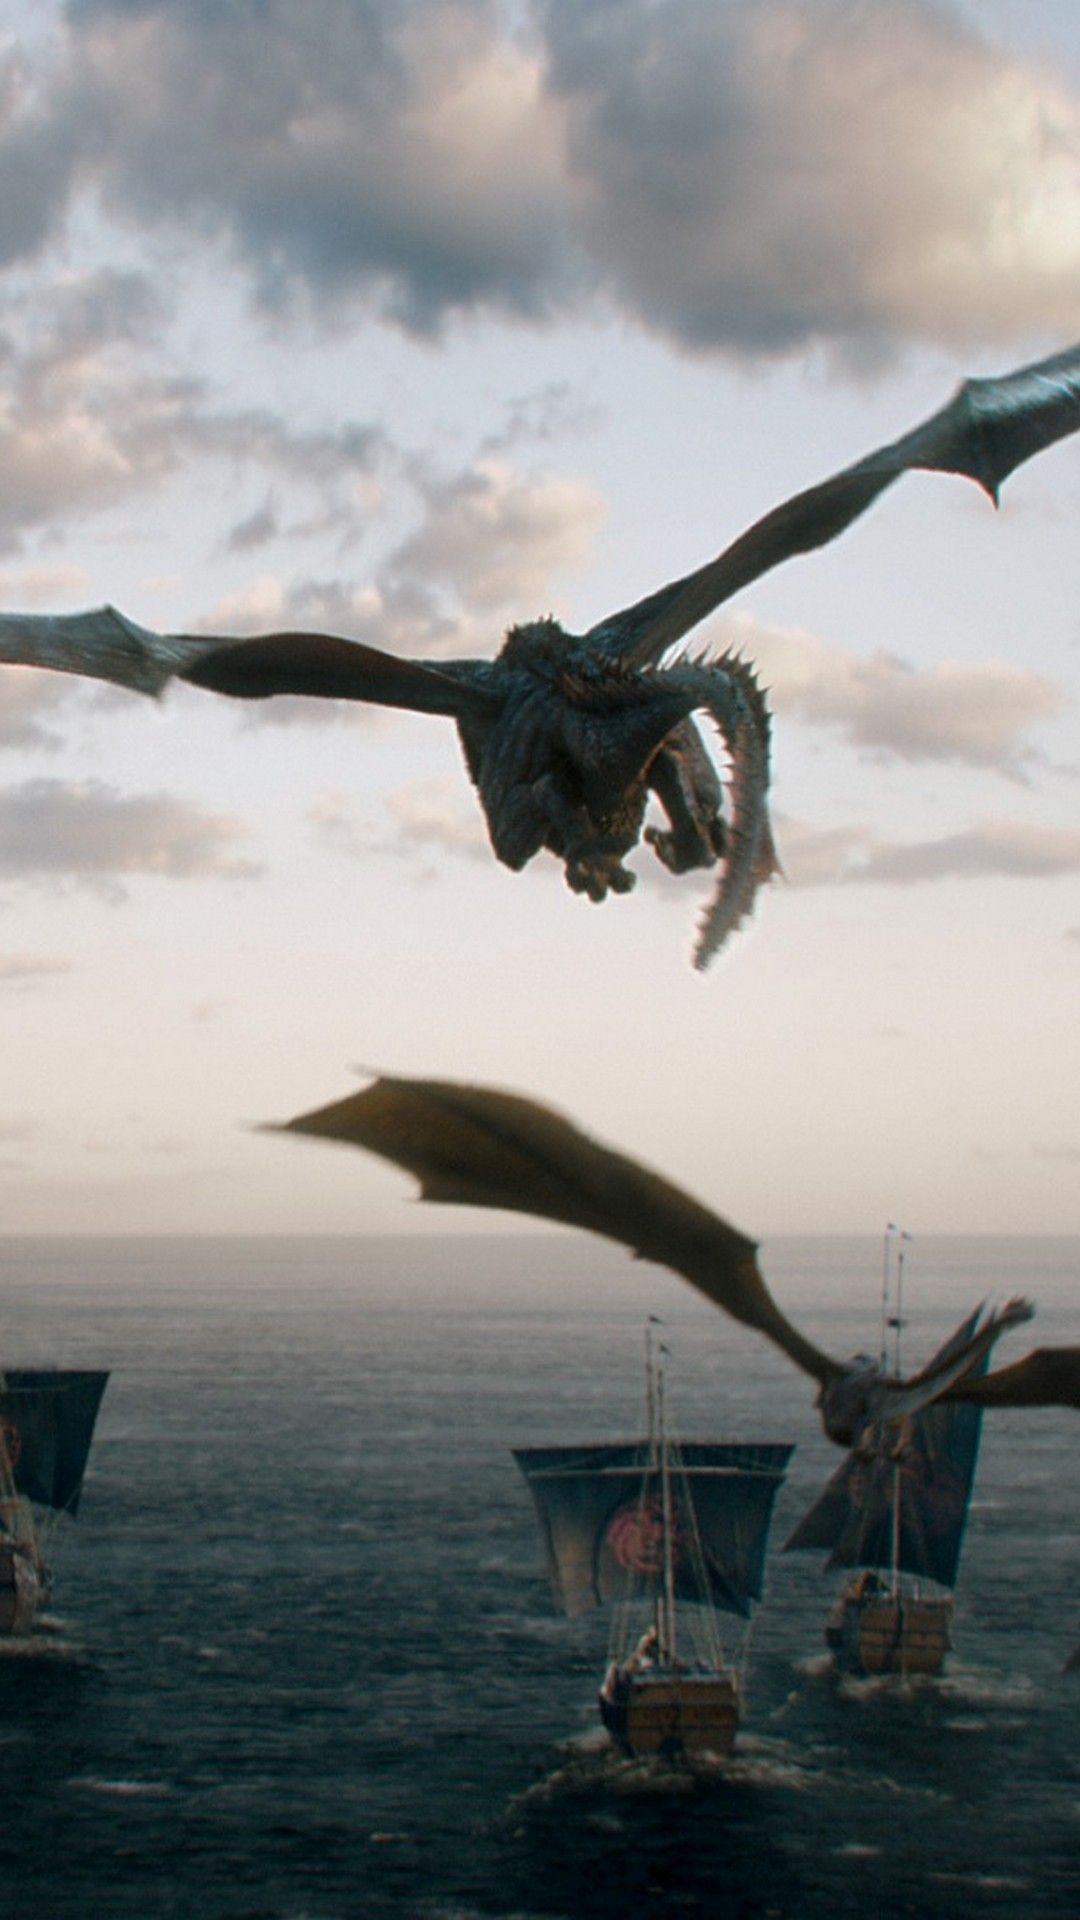 Game Of Thrones Dragons Wallpaper For Iphone Best Iphone